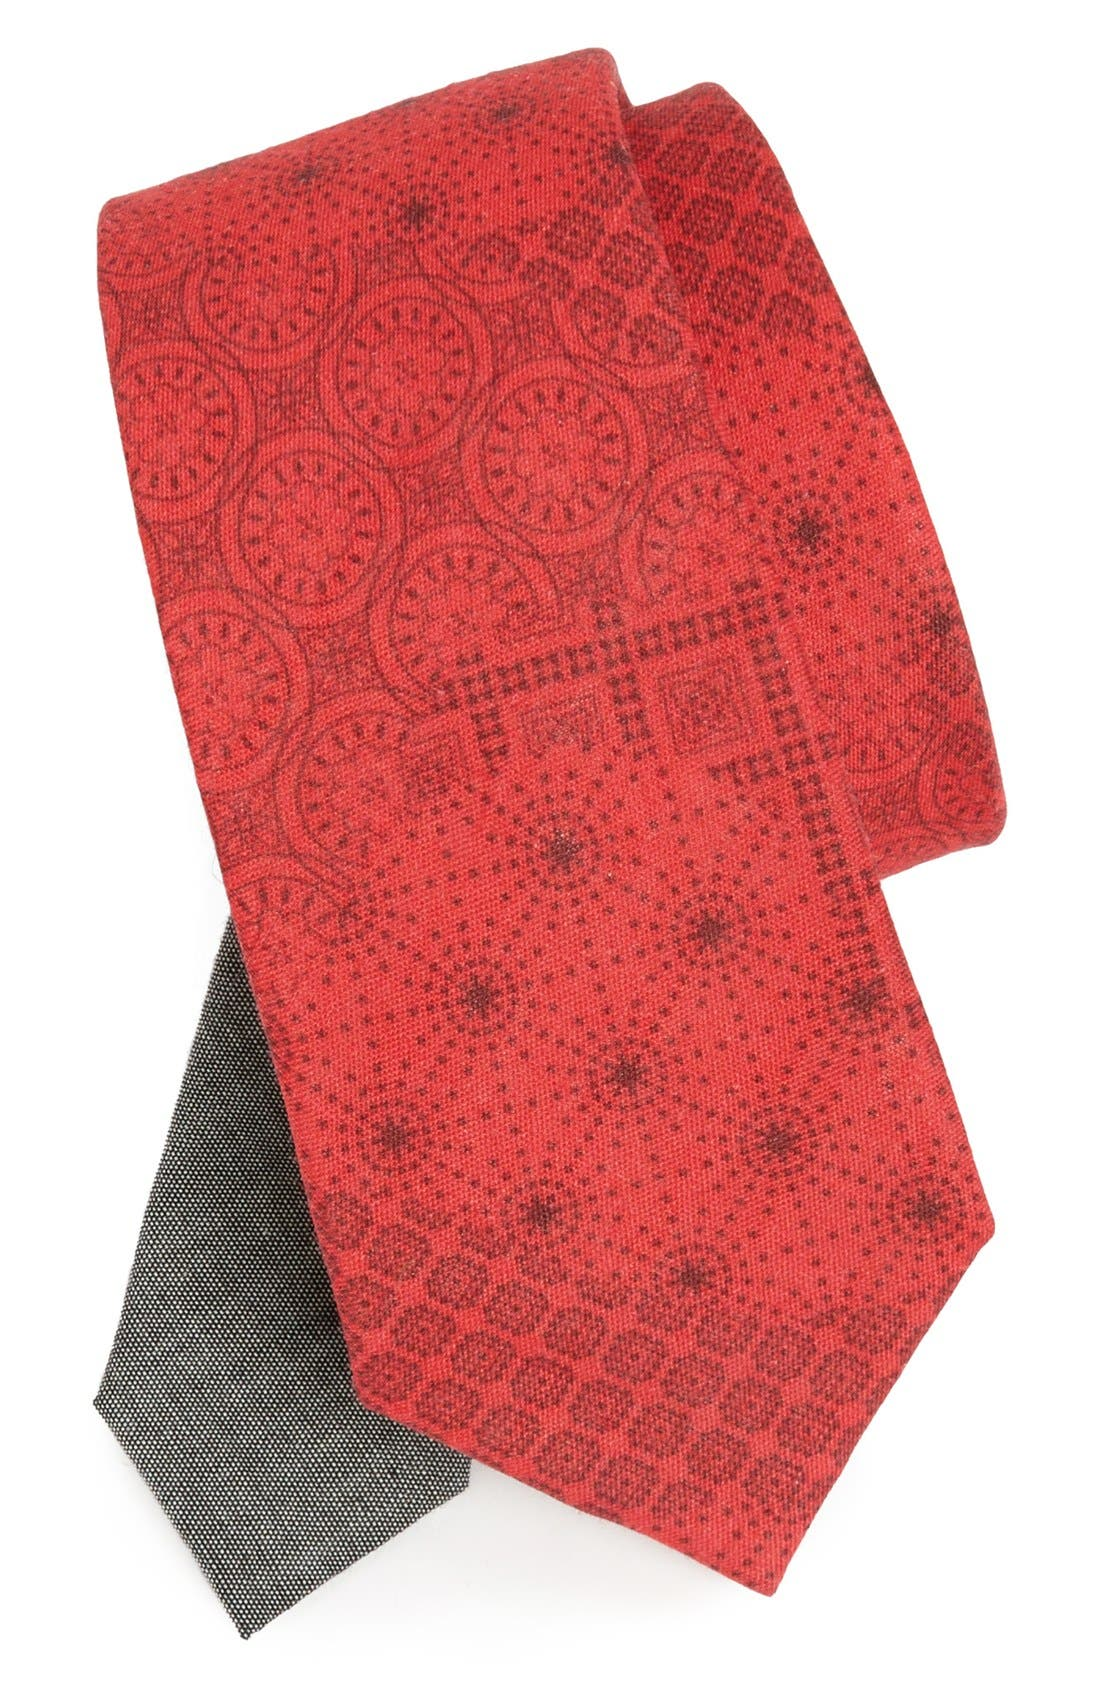 Alternate Image 1 Selected - EDIT by The Tie Bar Geometric Linen Tie (Nordstrom Exclusive)